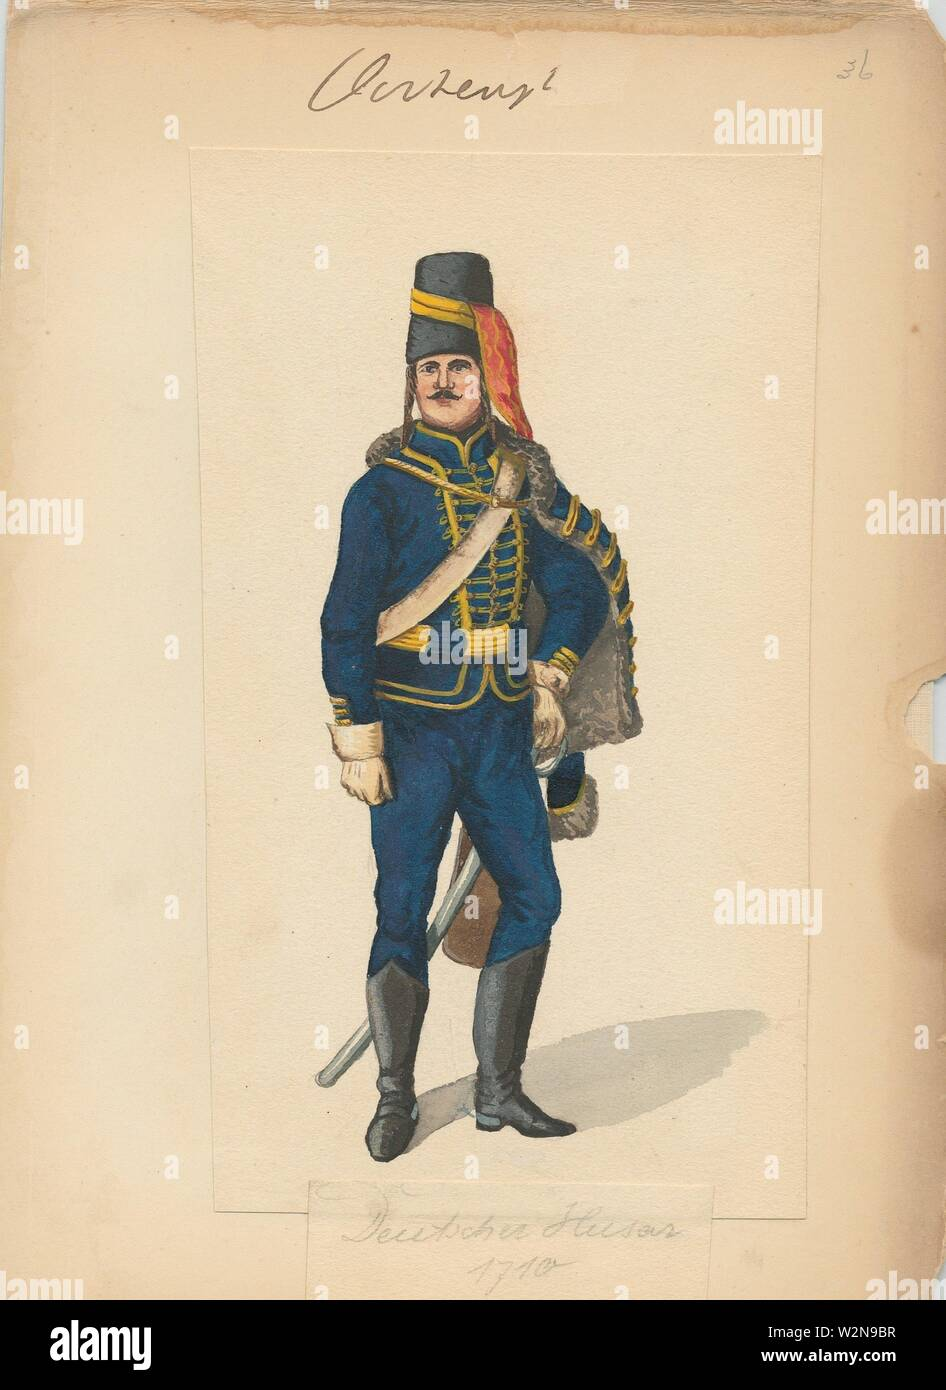 Deutscher Husar 1710. Vinkhuijzen, Hendrik Jacobus (Collector). The Vinkhuijzen collection of military uniforms Austria Austria, 1700-1750. Date - Stock Image